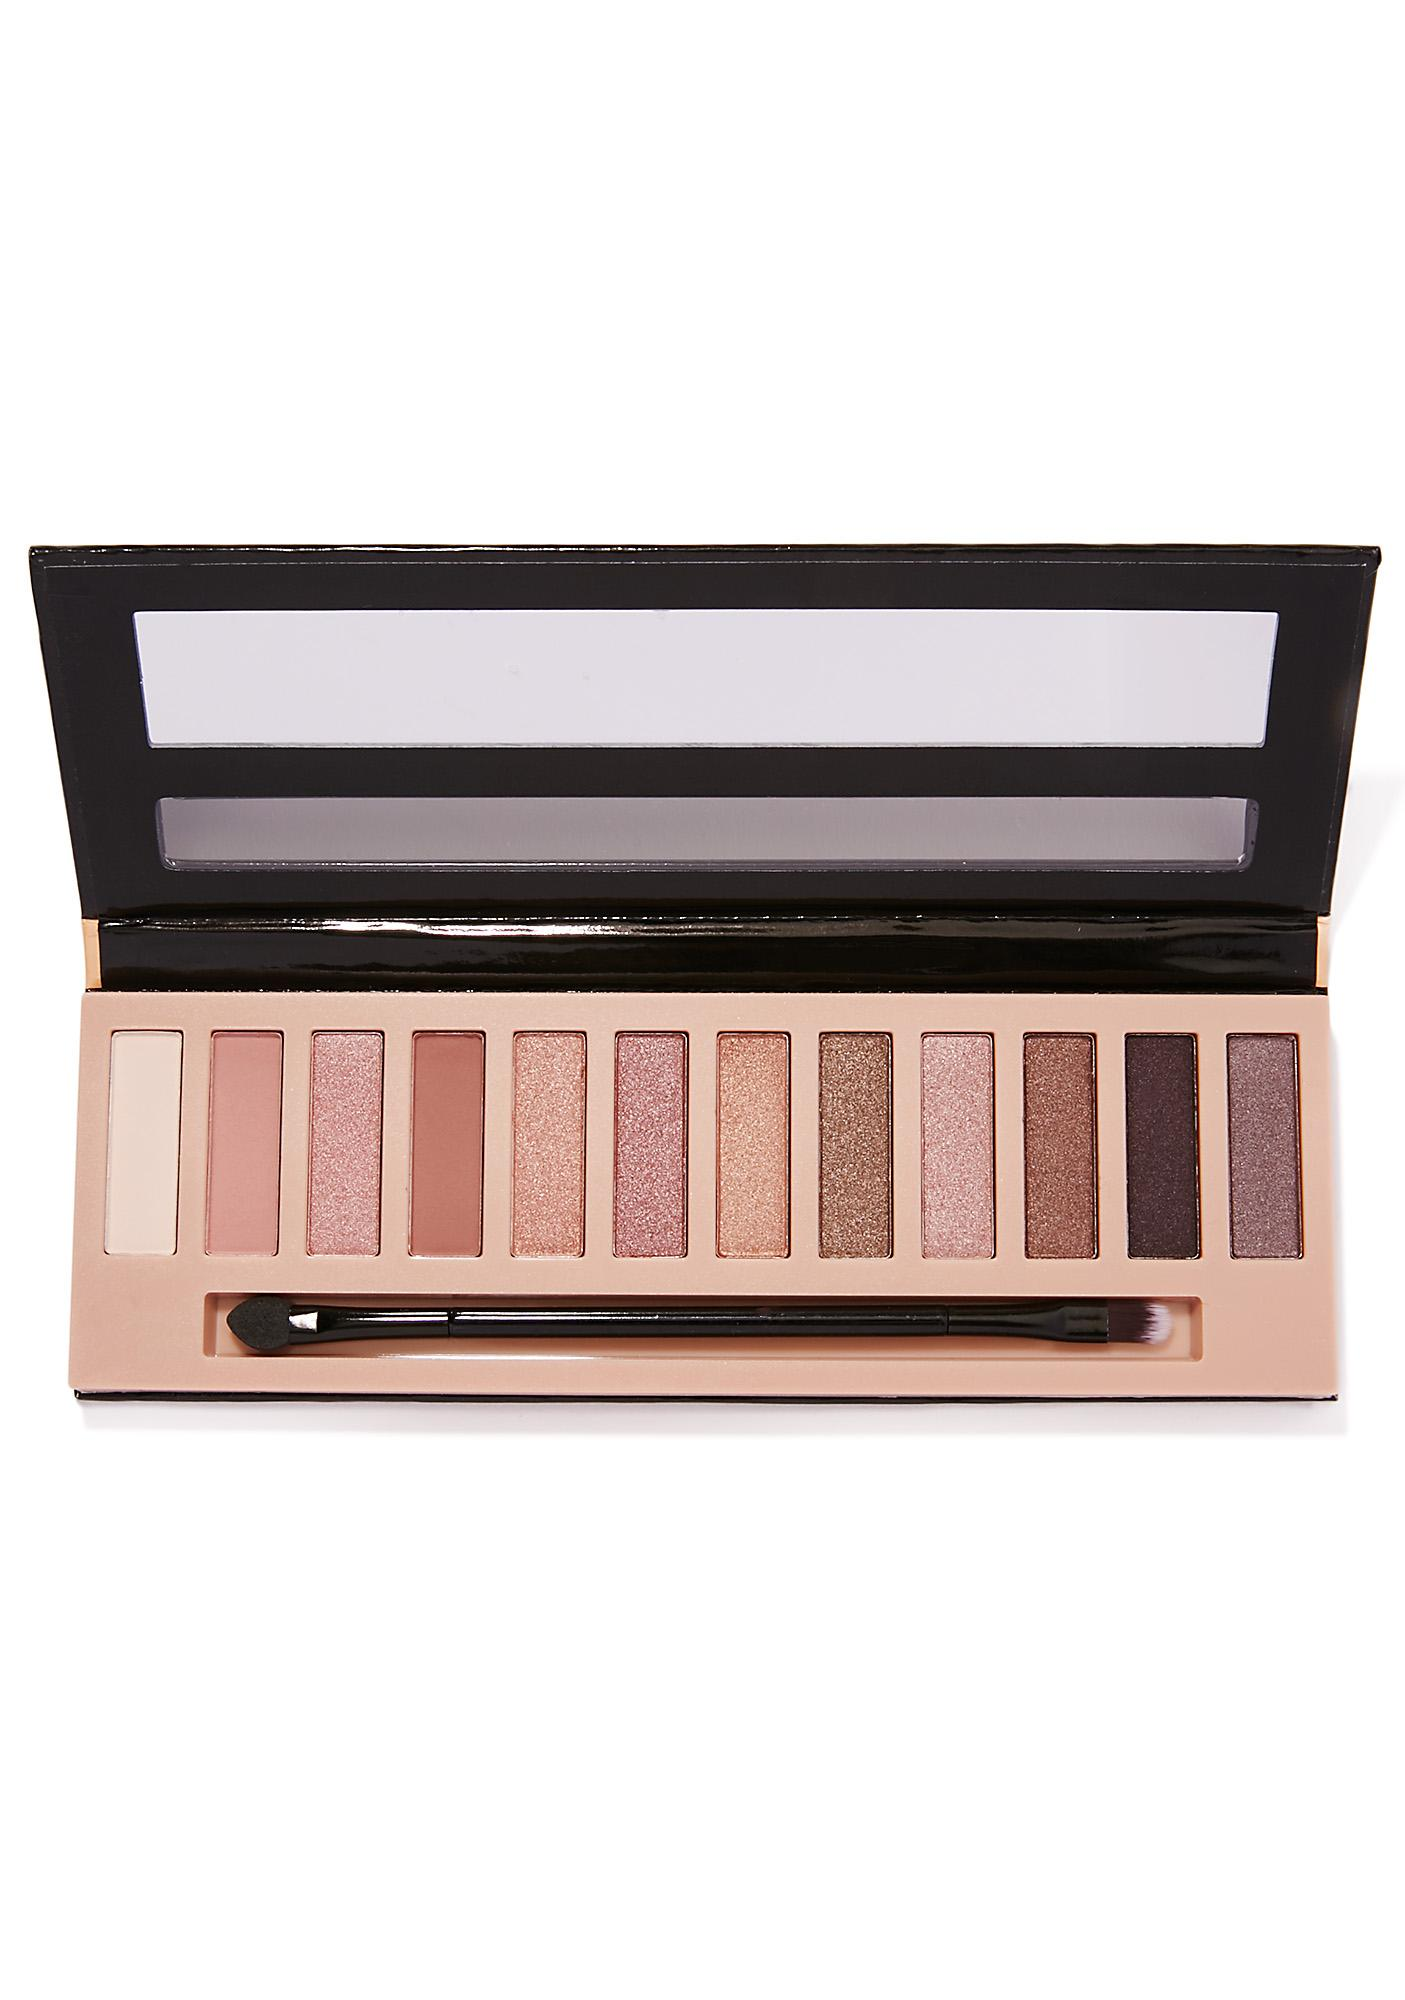 LA Girl Beauty Brick Nudes Eyeshadow Palette